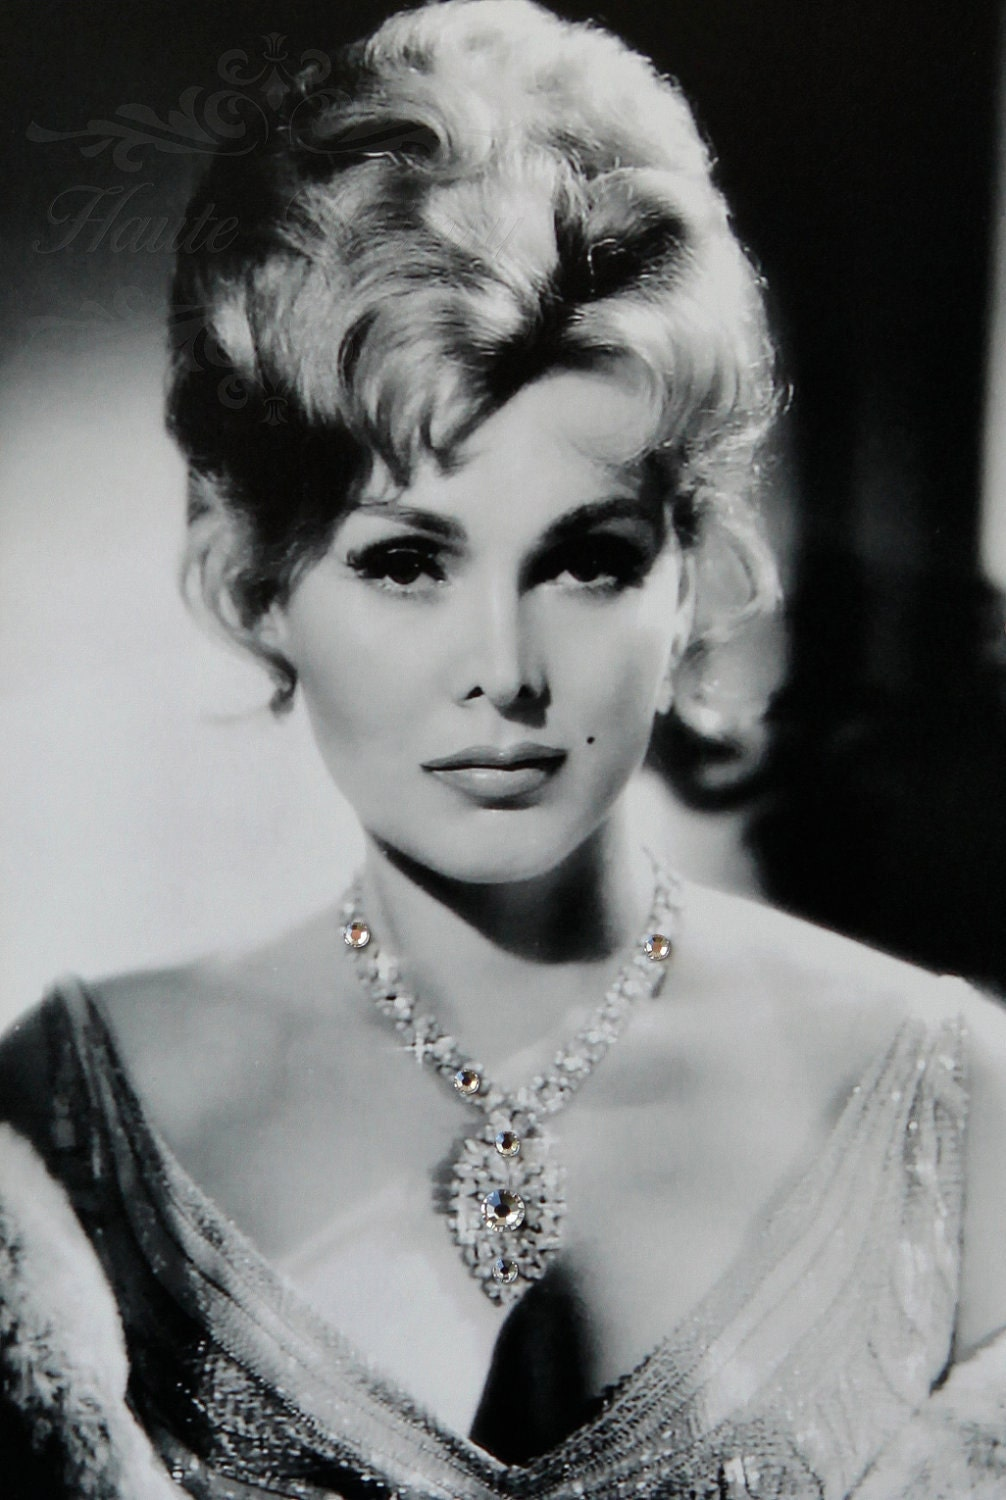 Zsa Zsa Gabor Quotes Quick Pix Zsa Zsa Gabor  Independent Film News And Media